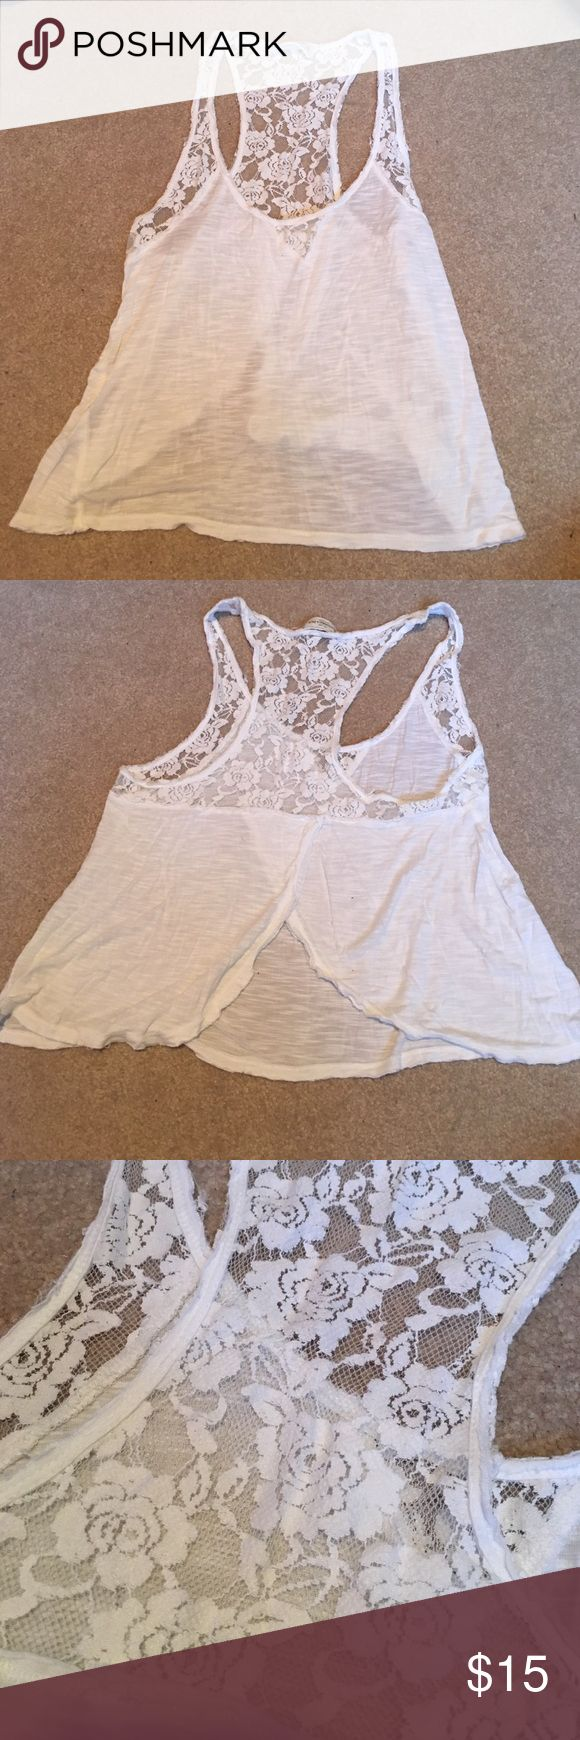 Abercrombie and Fitch tank top Abercrombie and Fitch white tank top. Size large. Really super cute. The back cuts open and too had lots of lace. Would look super cute with bralette underneath. Willing to negotiate price. Abercrombie & Fitch Tops Tank Tops